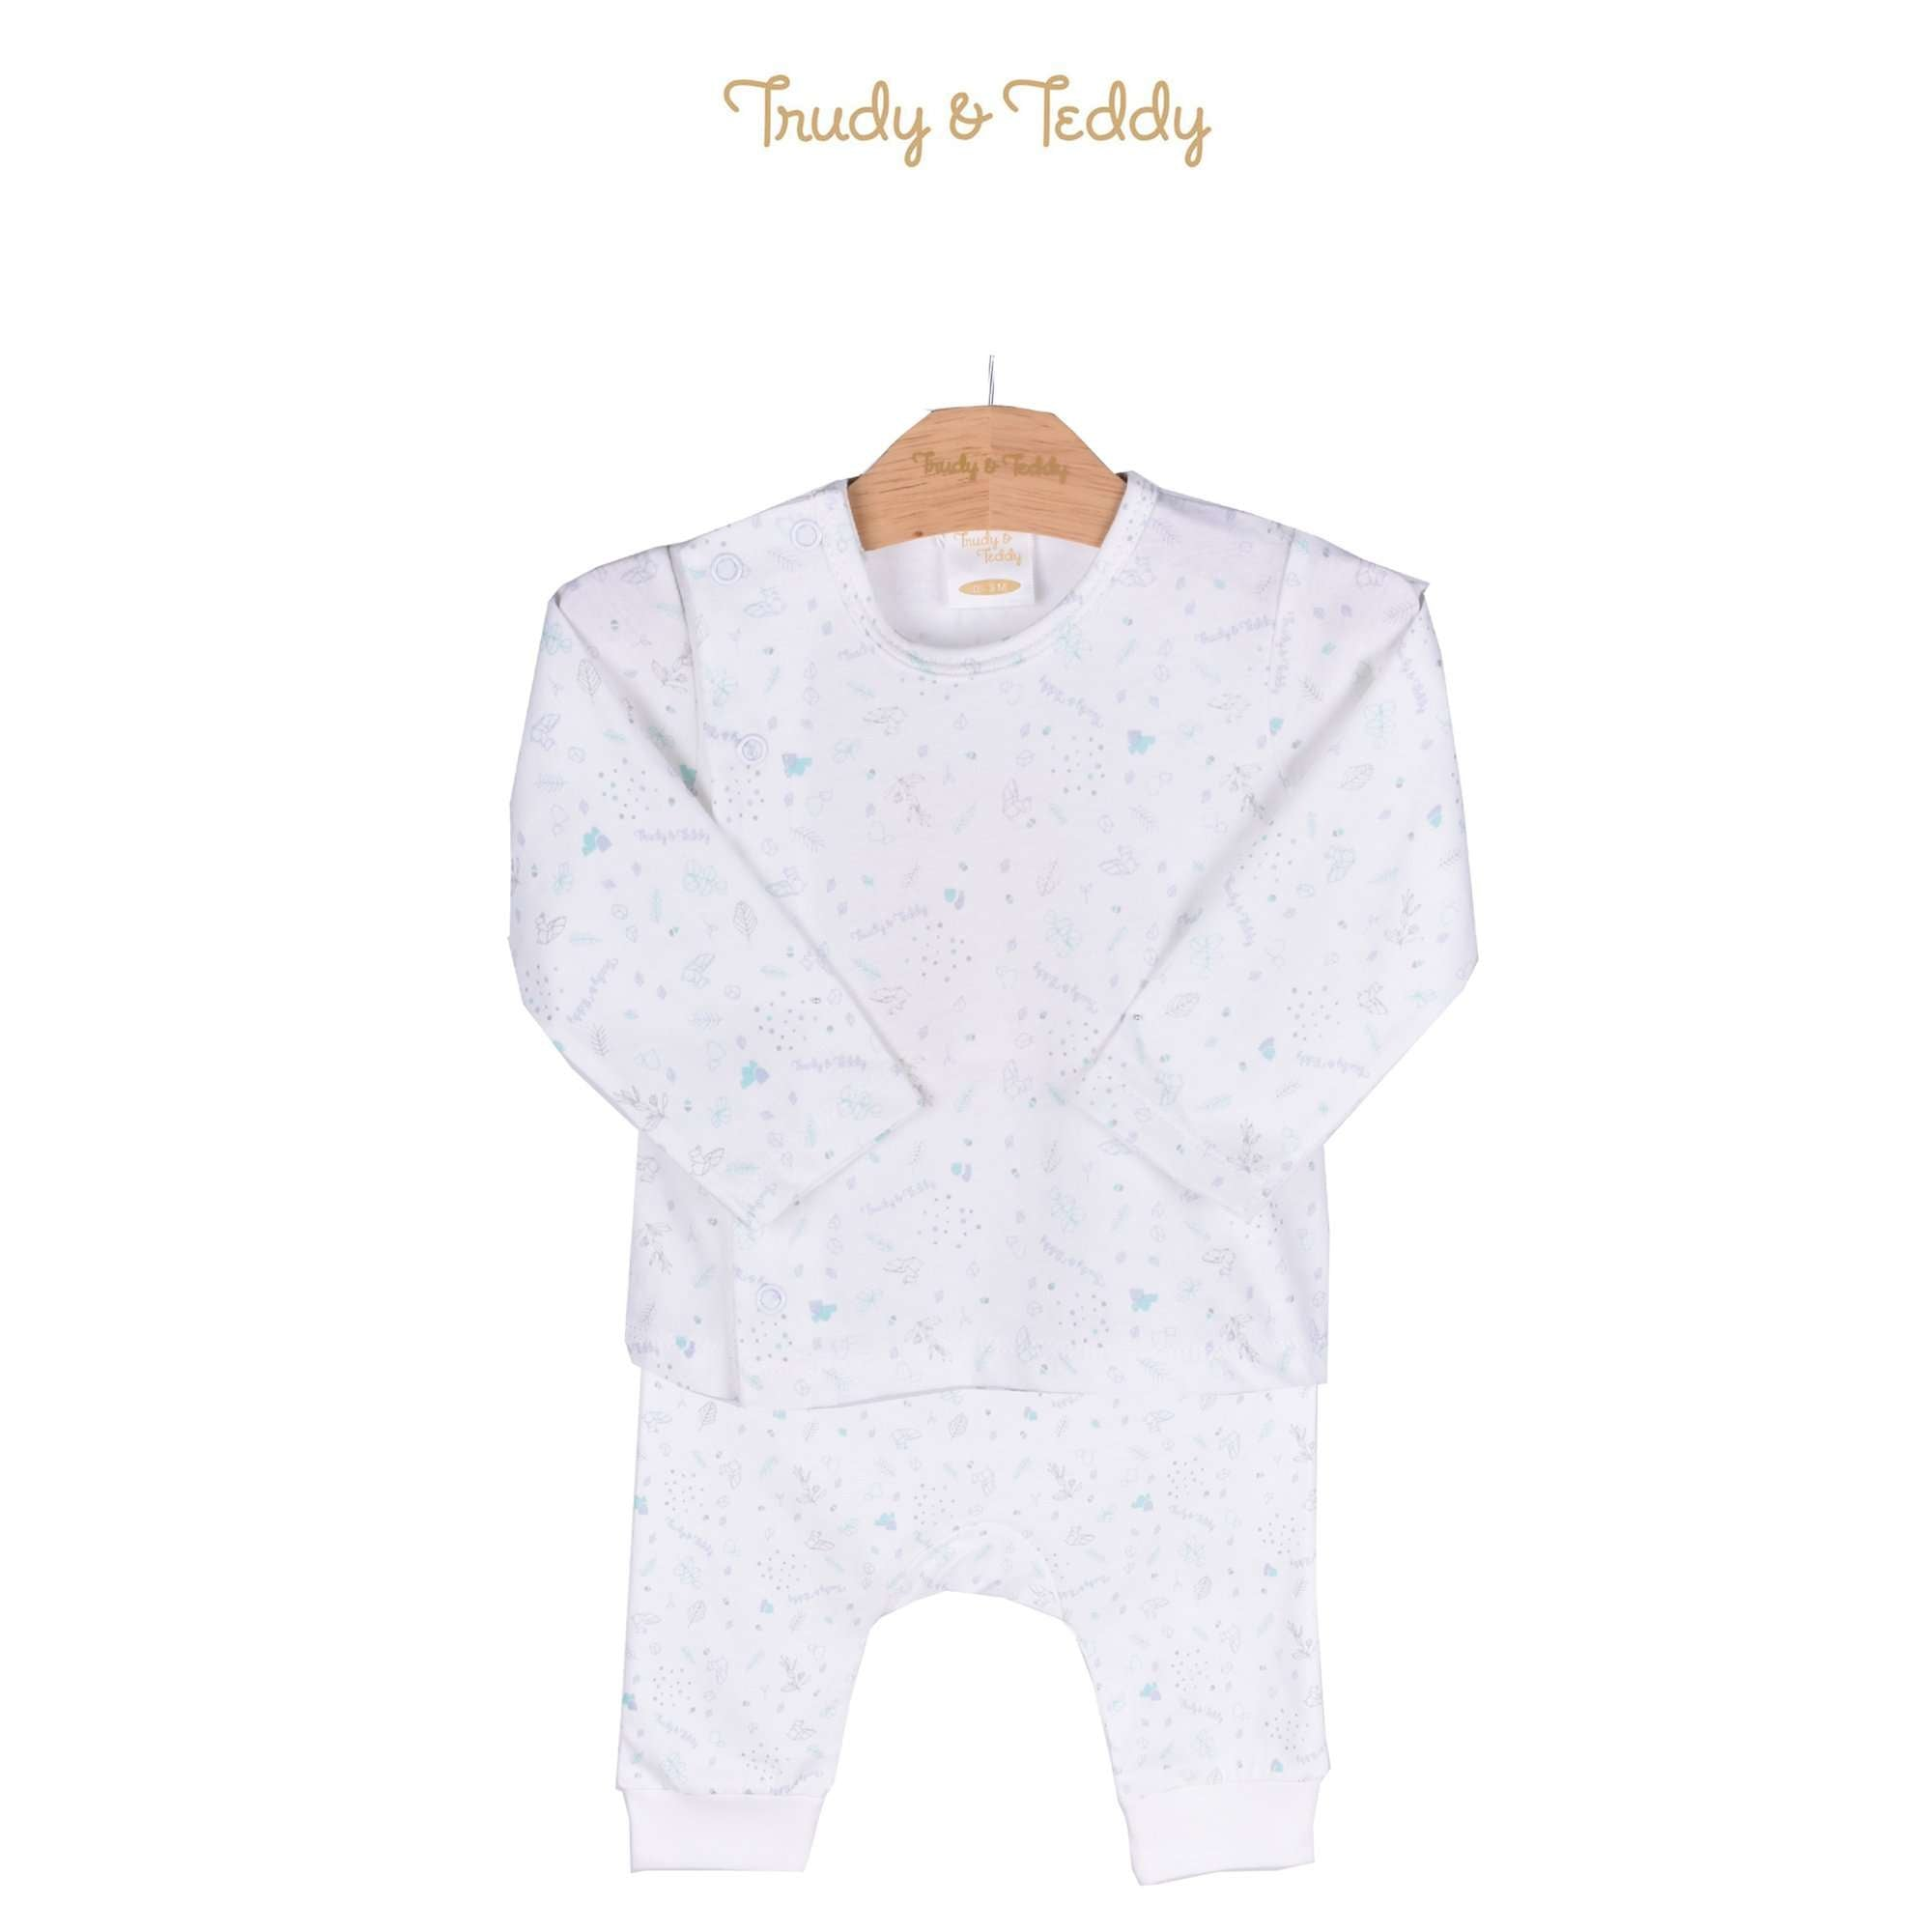 Trudy & Teddy Baby Boy Long Sleeve Long Pants Suit 820030-431 : Buy Trudy & Teddy online at CMG.MY